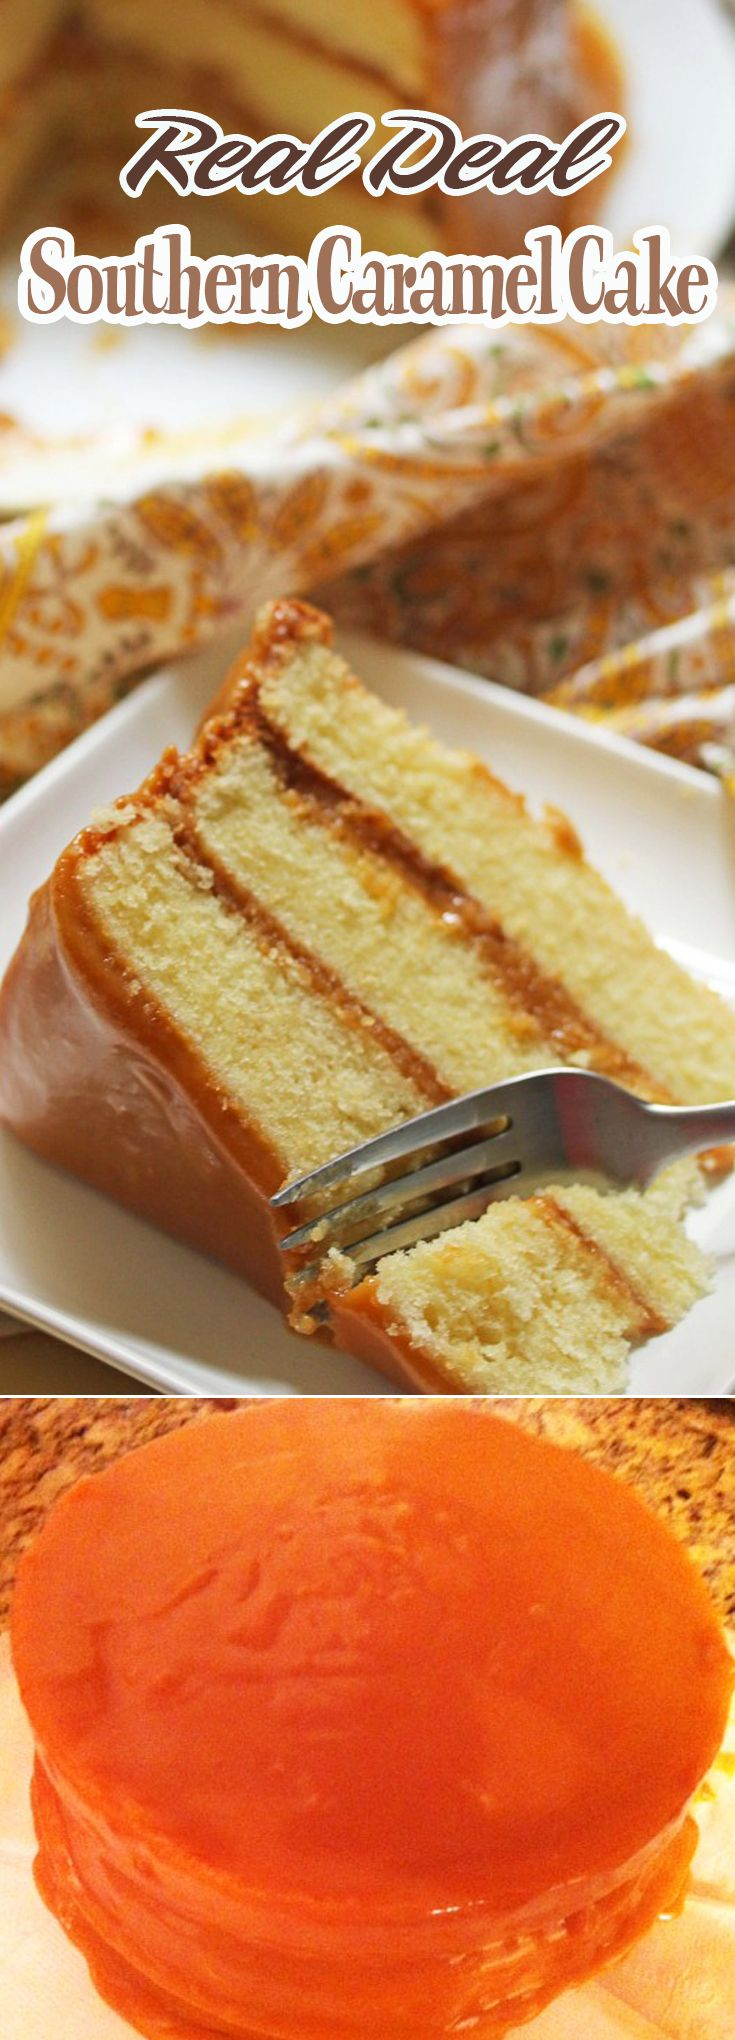 southern caramel cake 17 best ideas about southern caramel cake on 7598